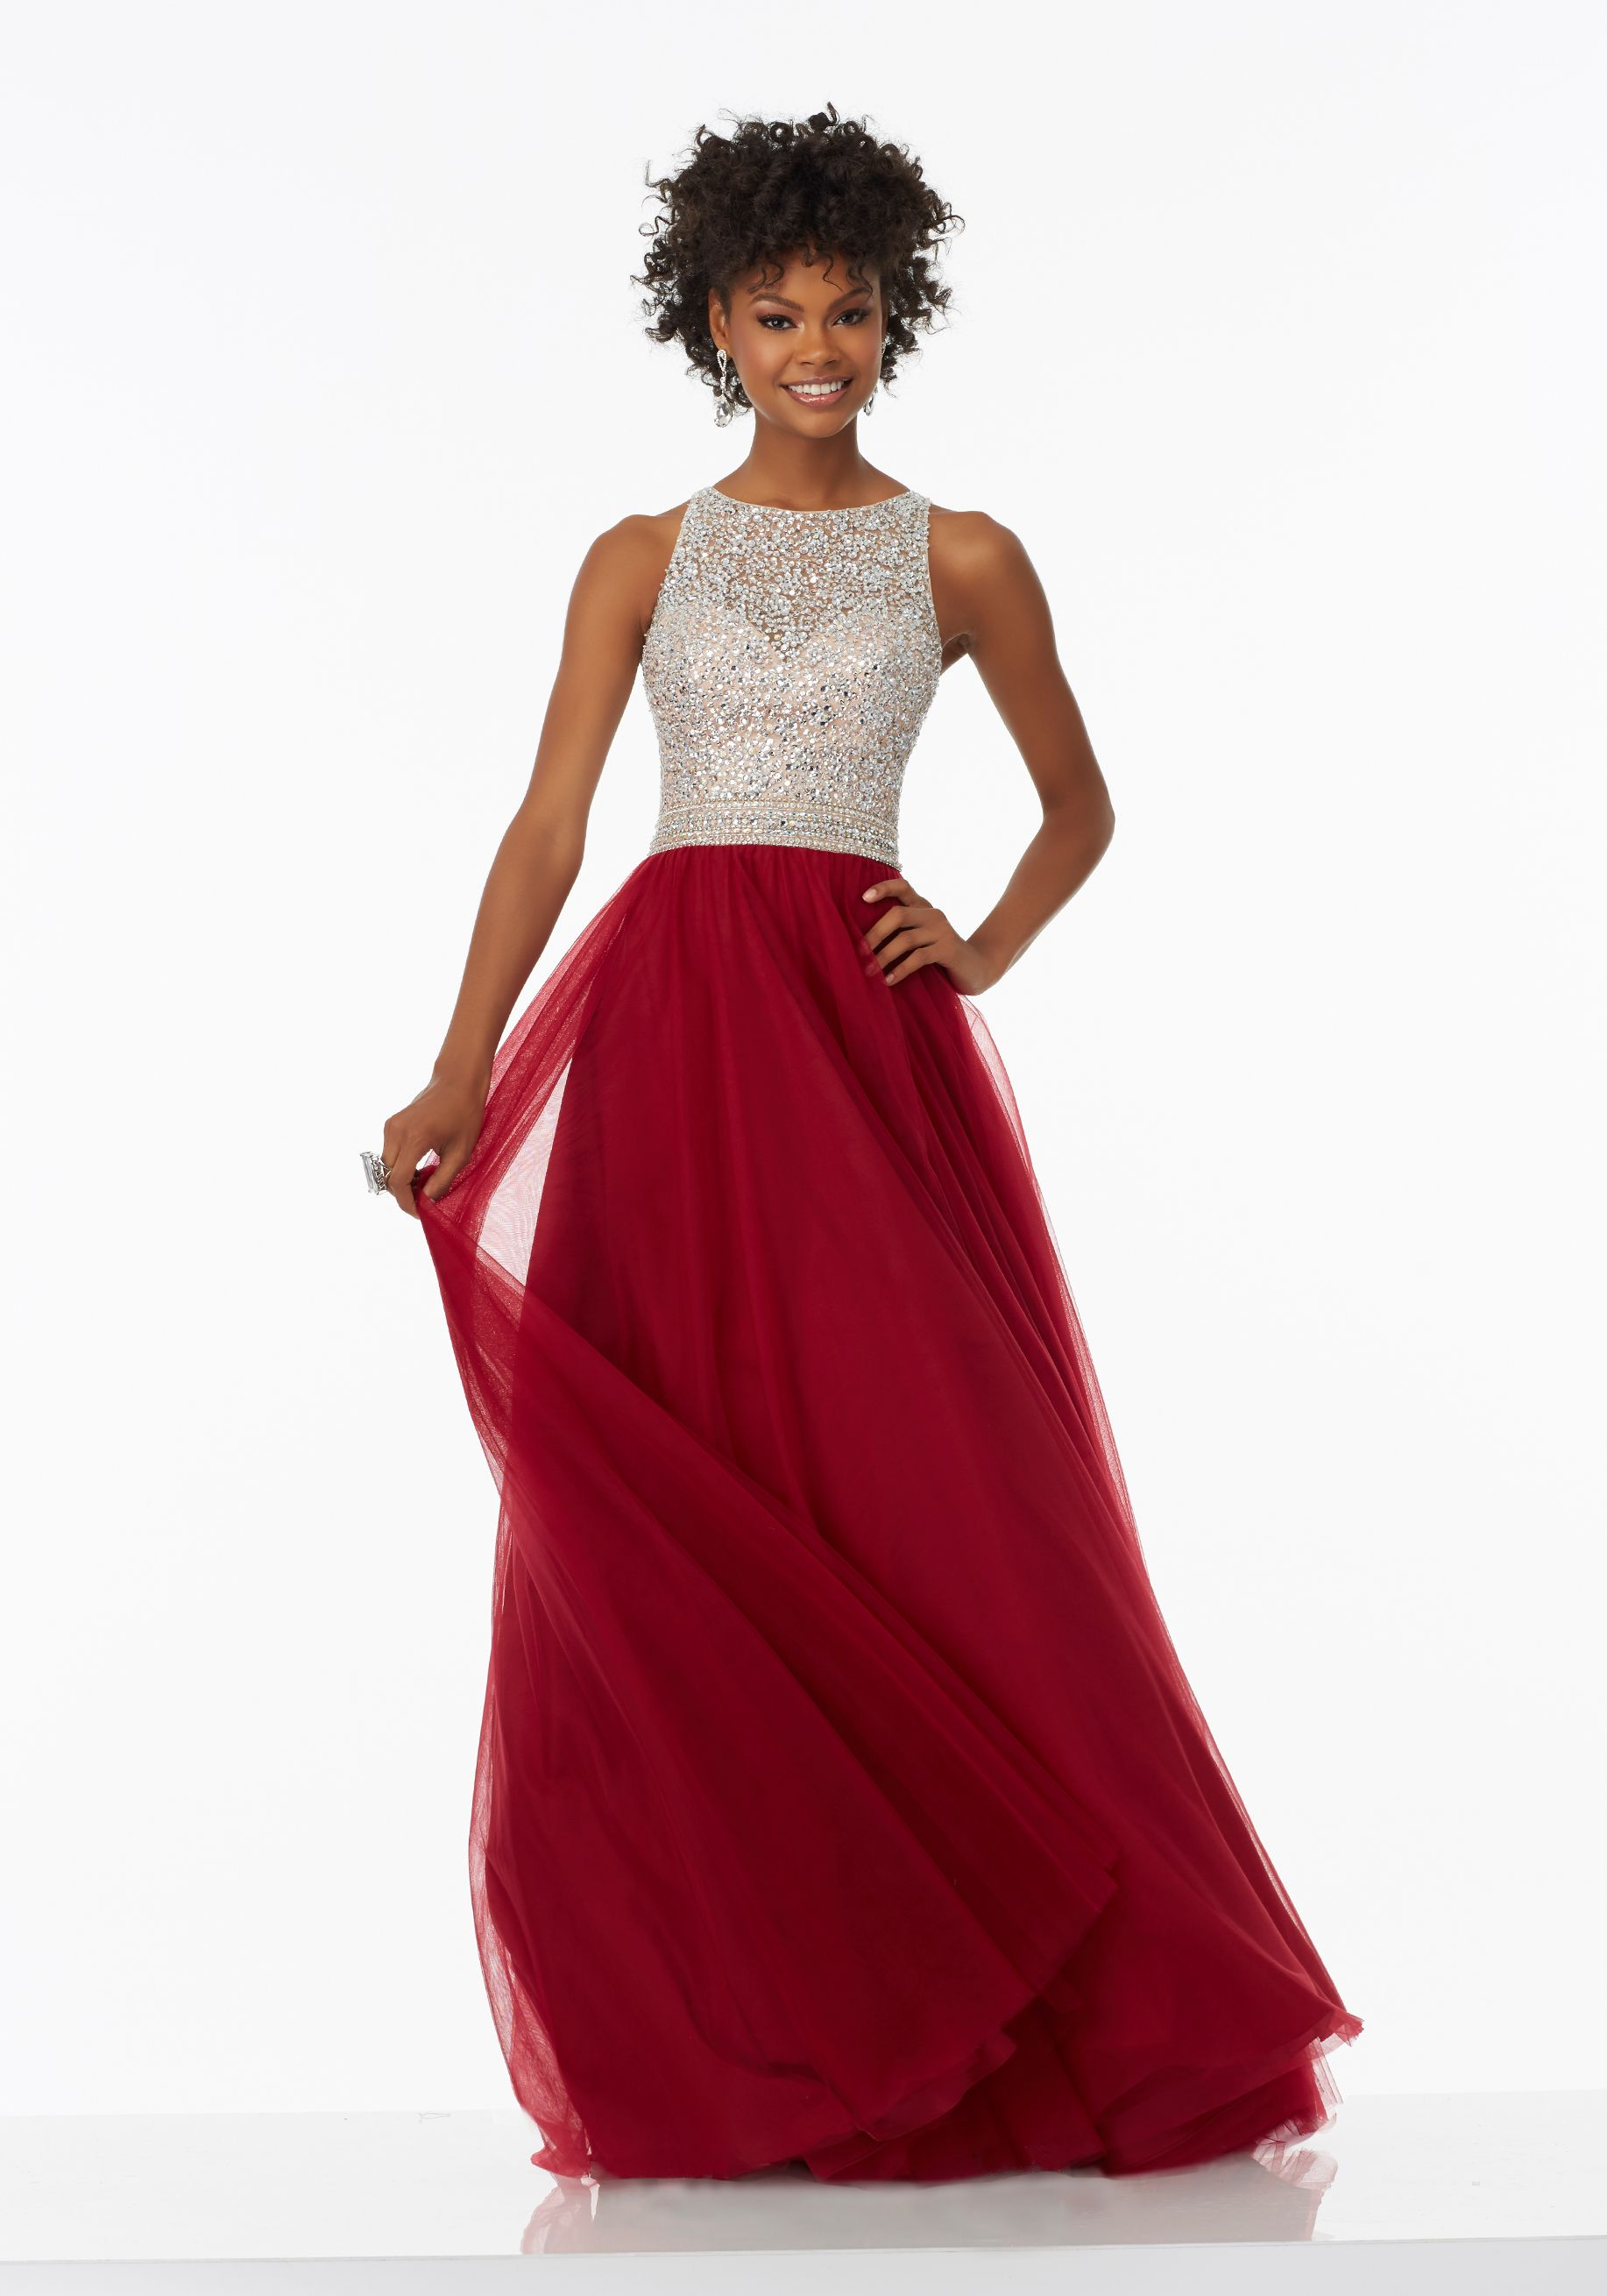 Aline prom dress featuring a fully beaded bodice and soft net skirt